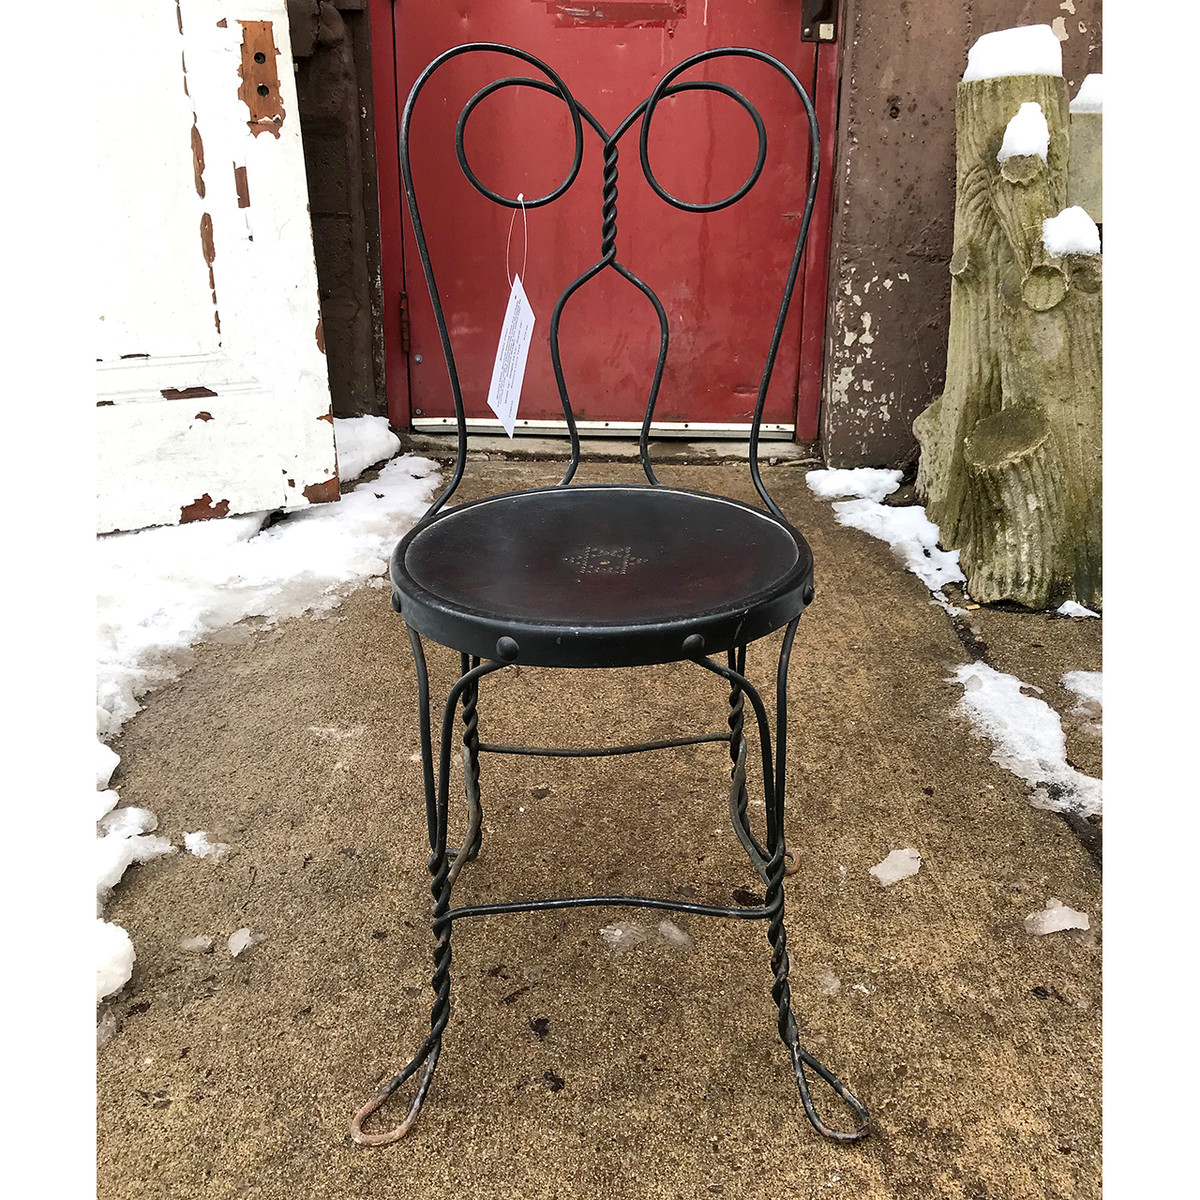 - F18010 - Antique Revival Period Wire Chair